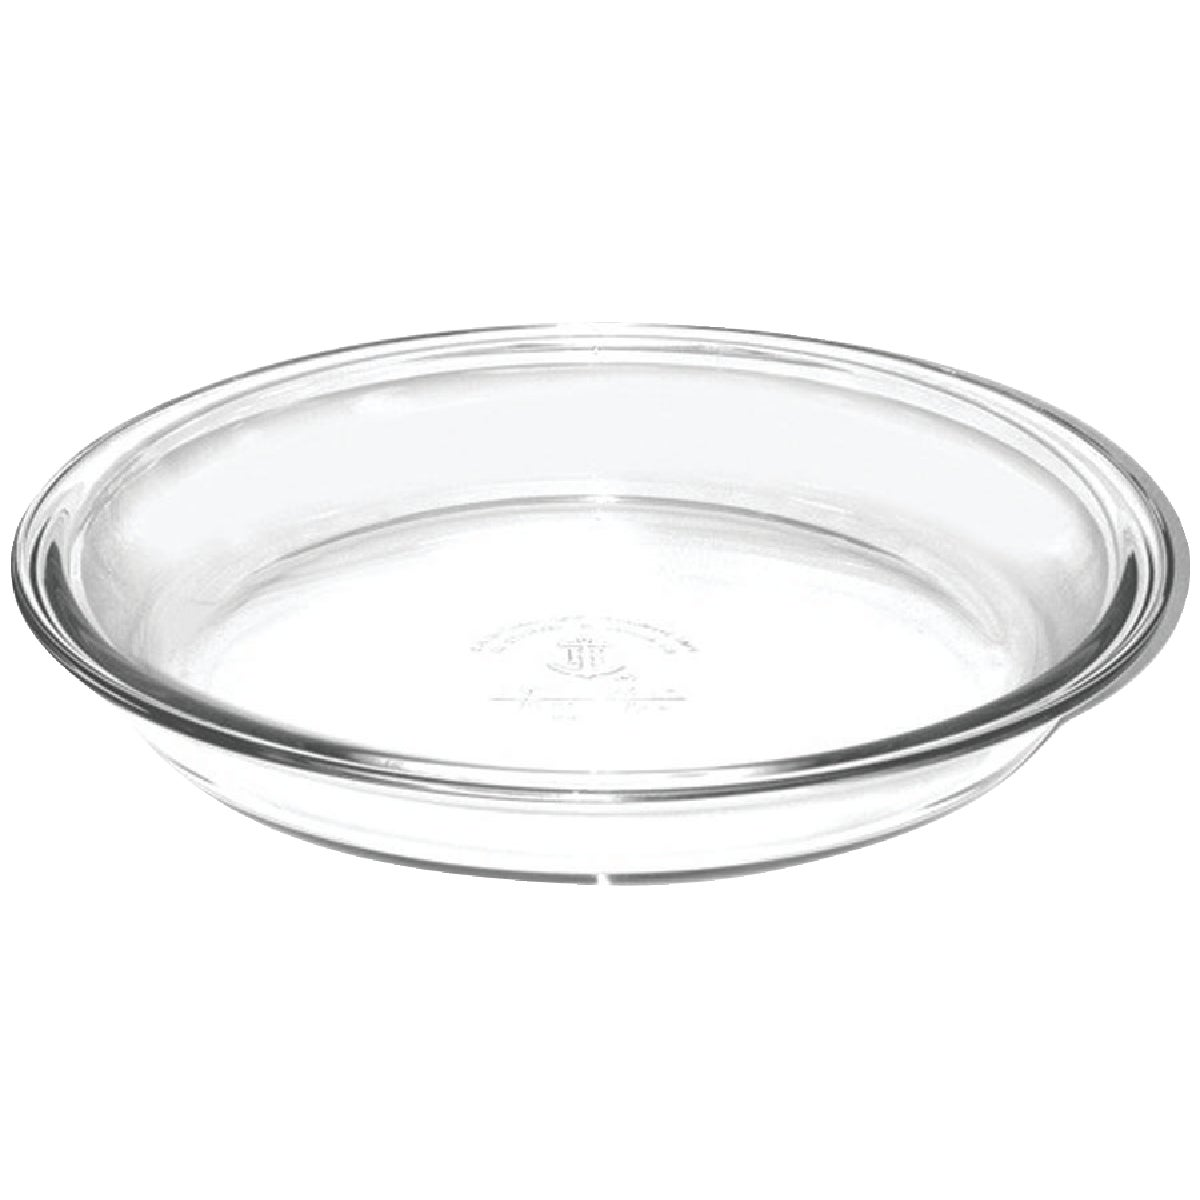 "9"" GLASS PIE PLATE - 82638OBL11 by Anchor Hckg Roberts"